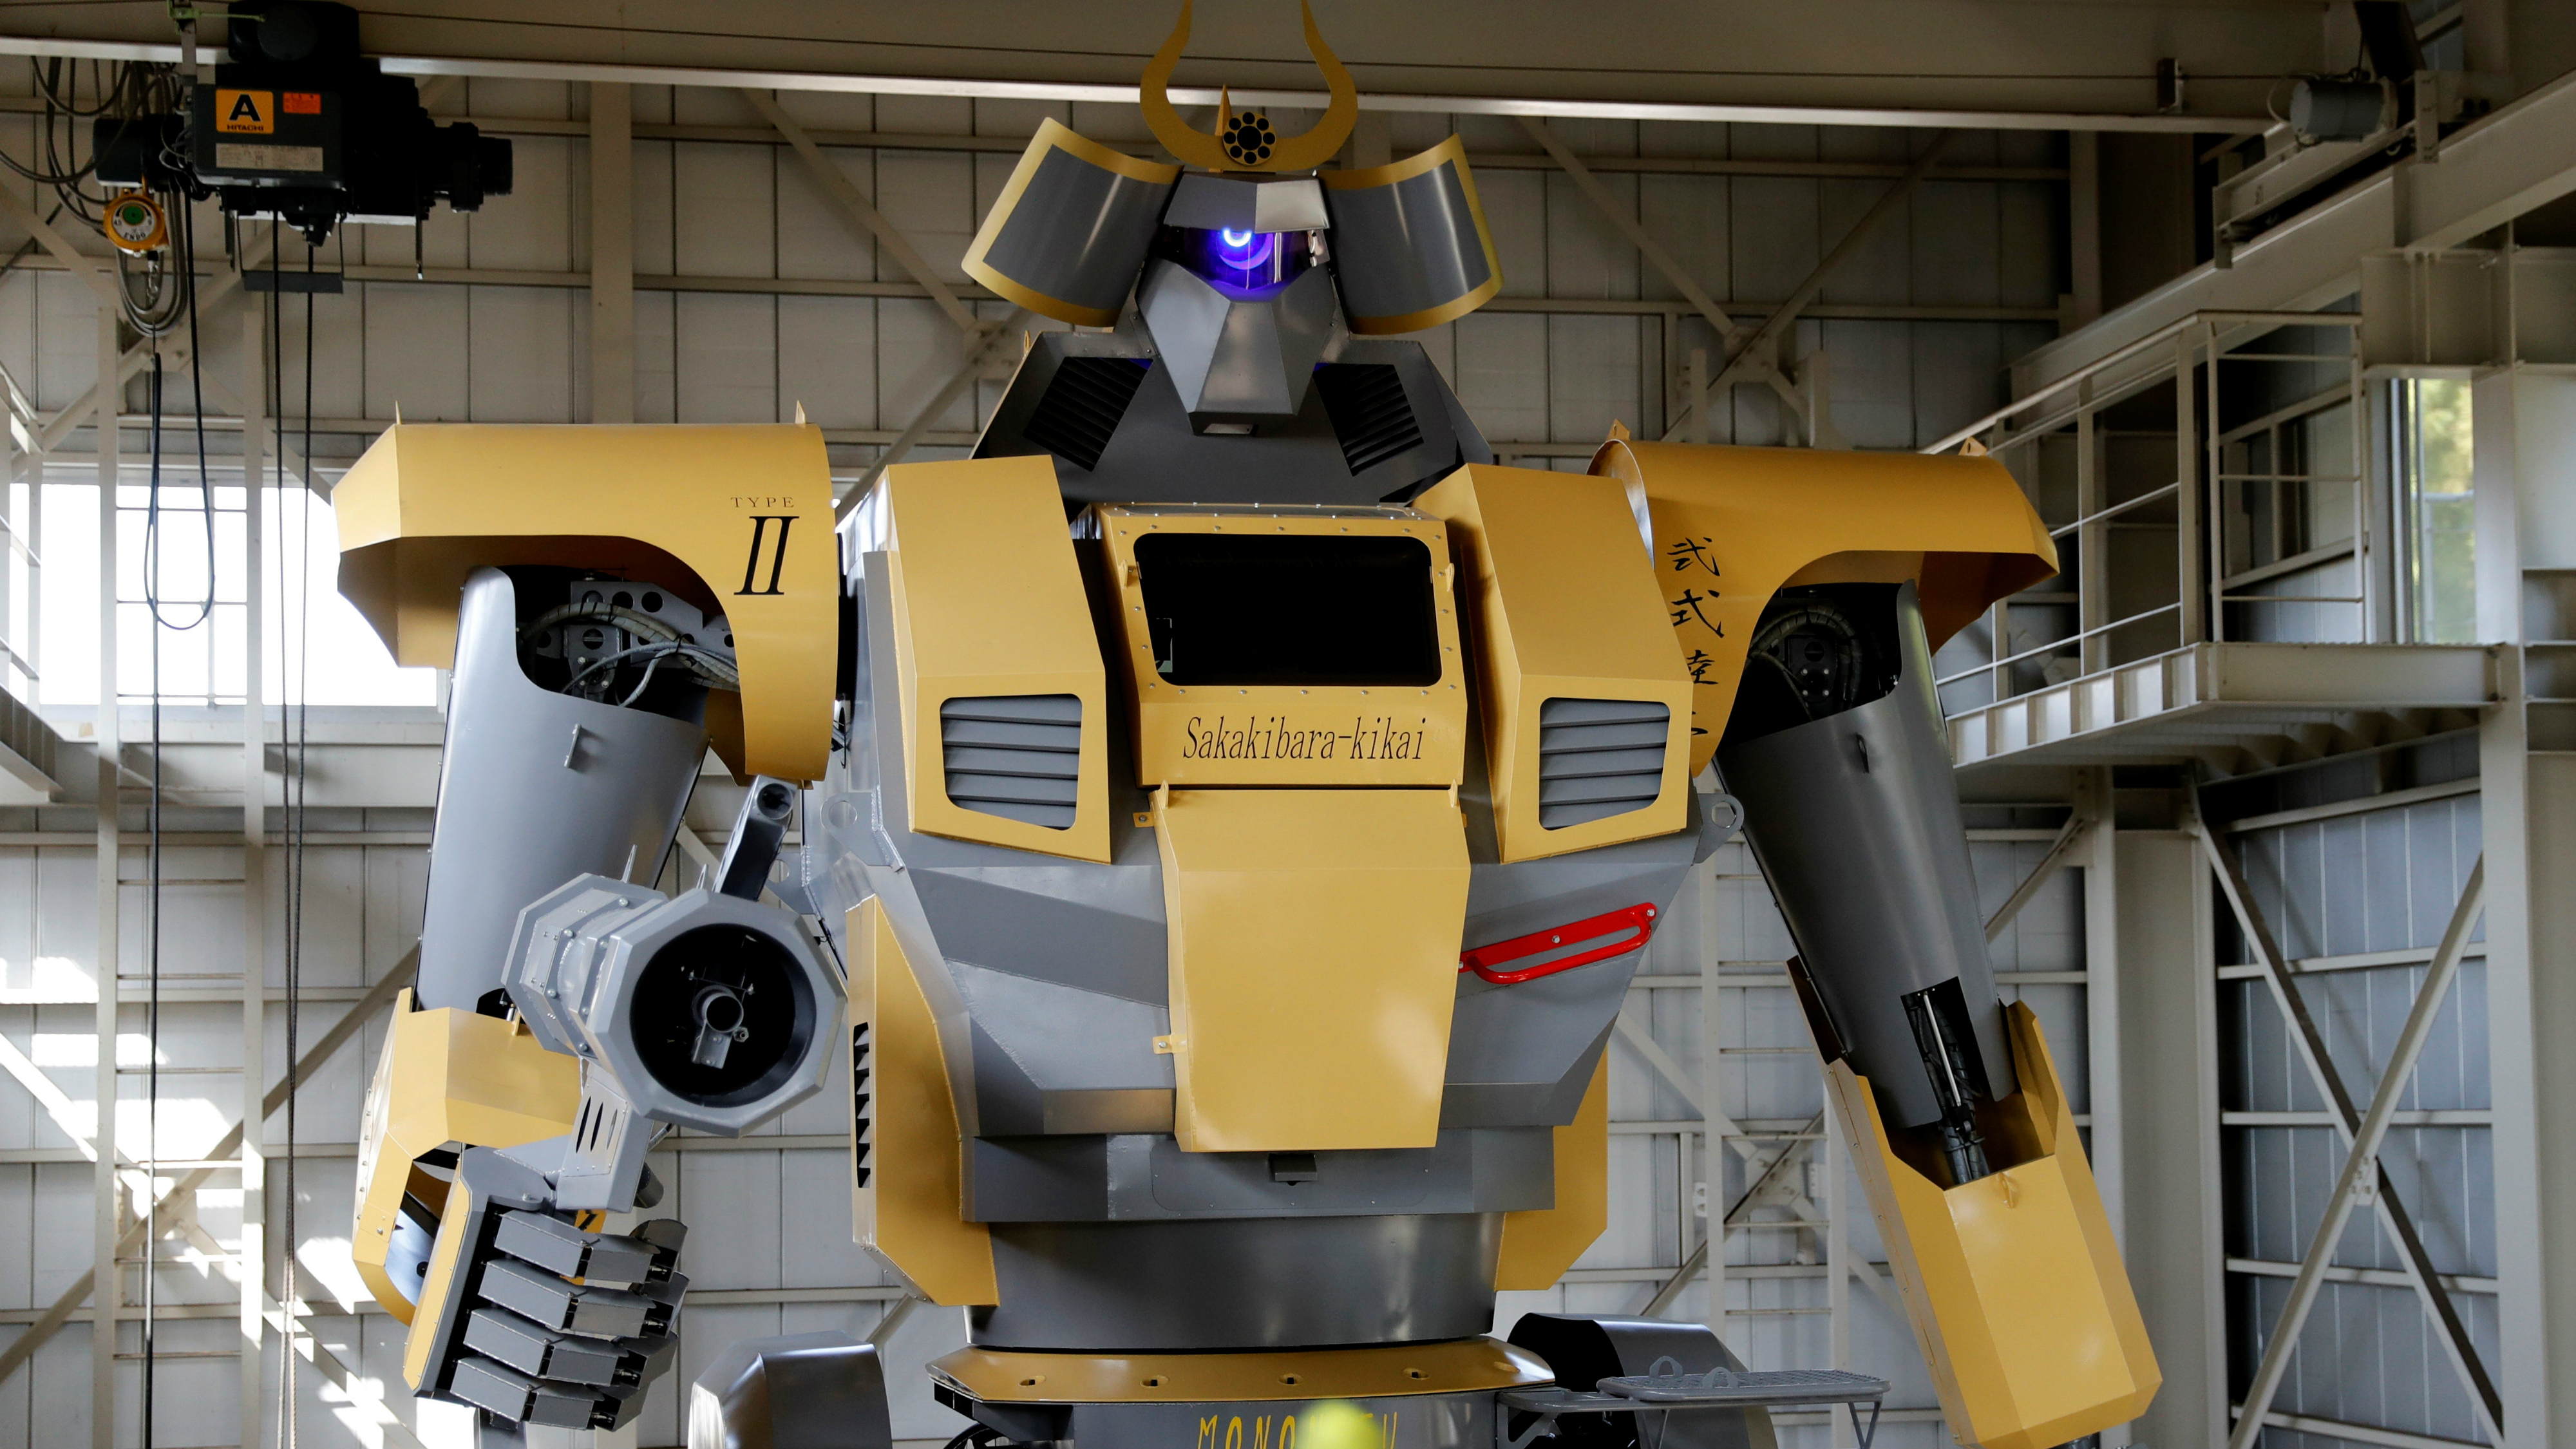 A very large robot in a factory.